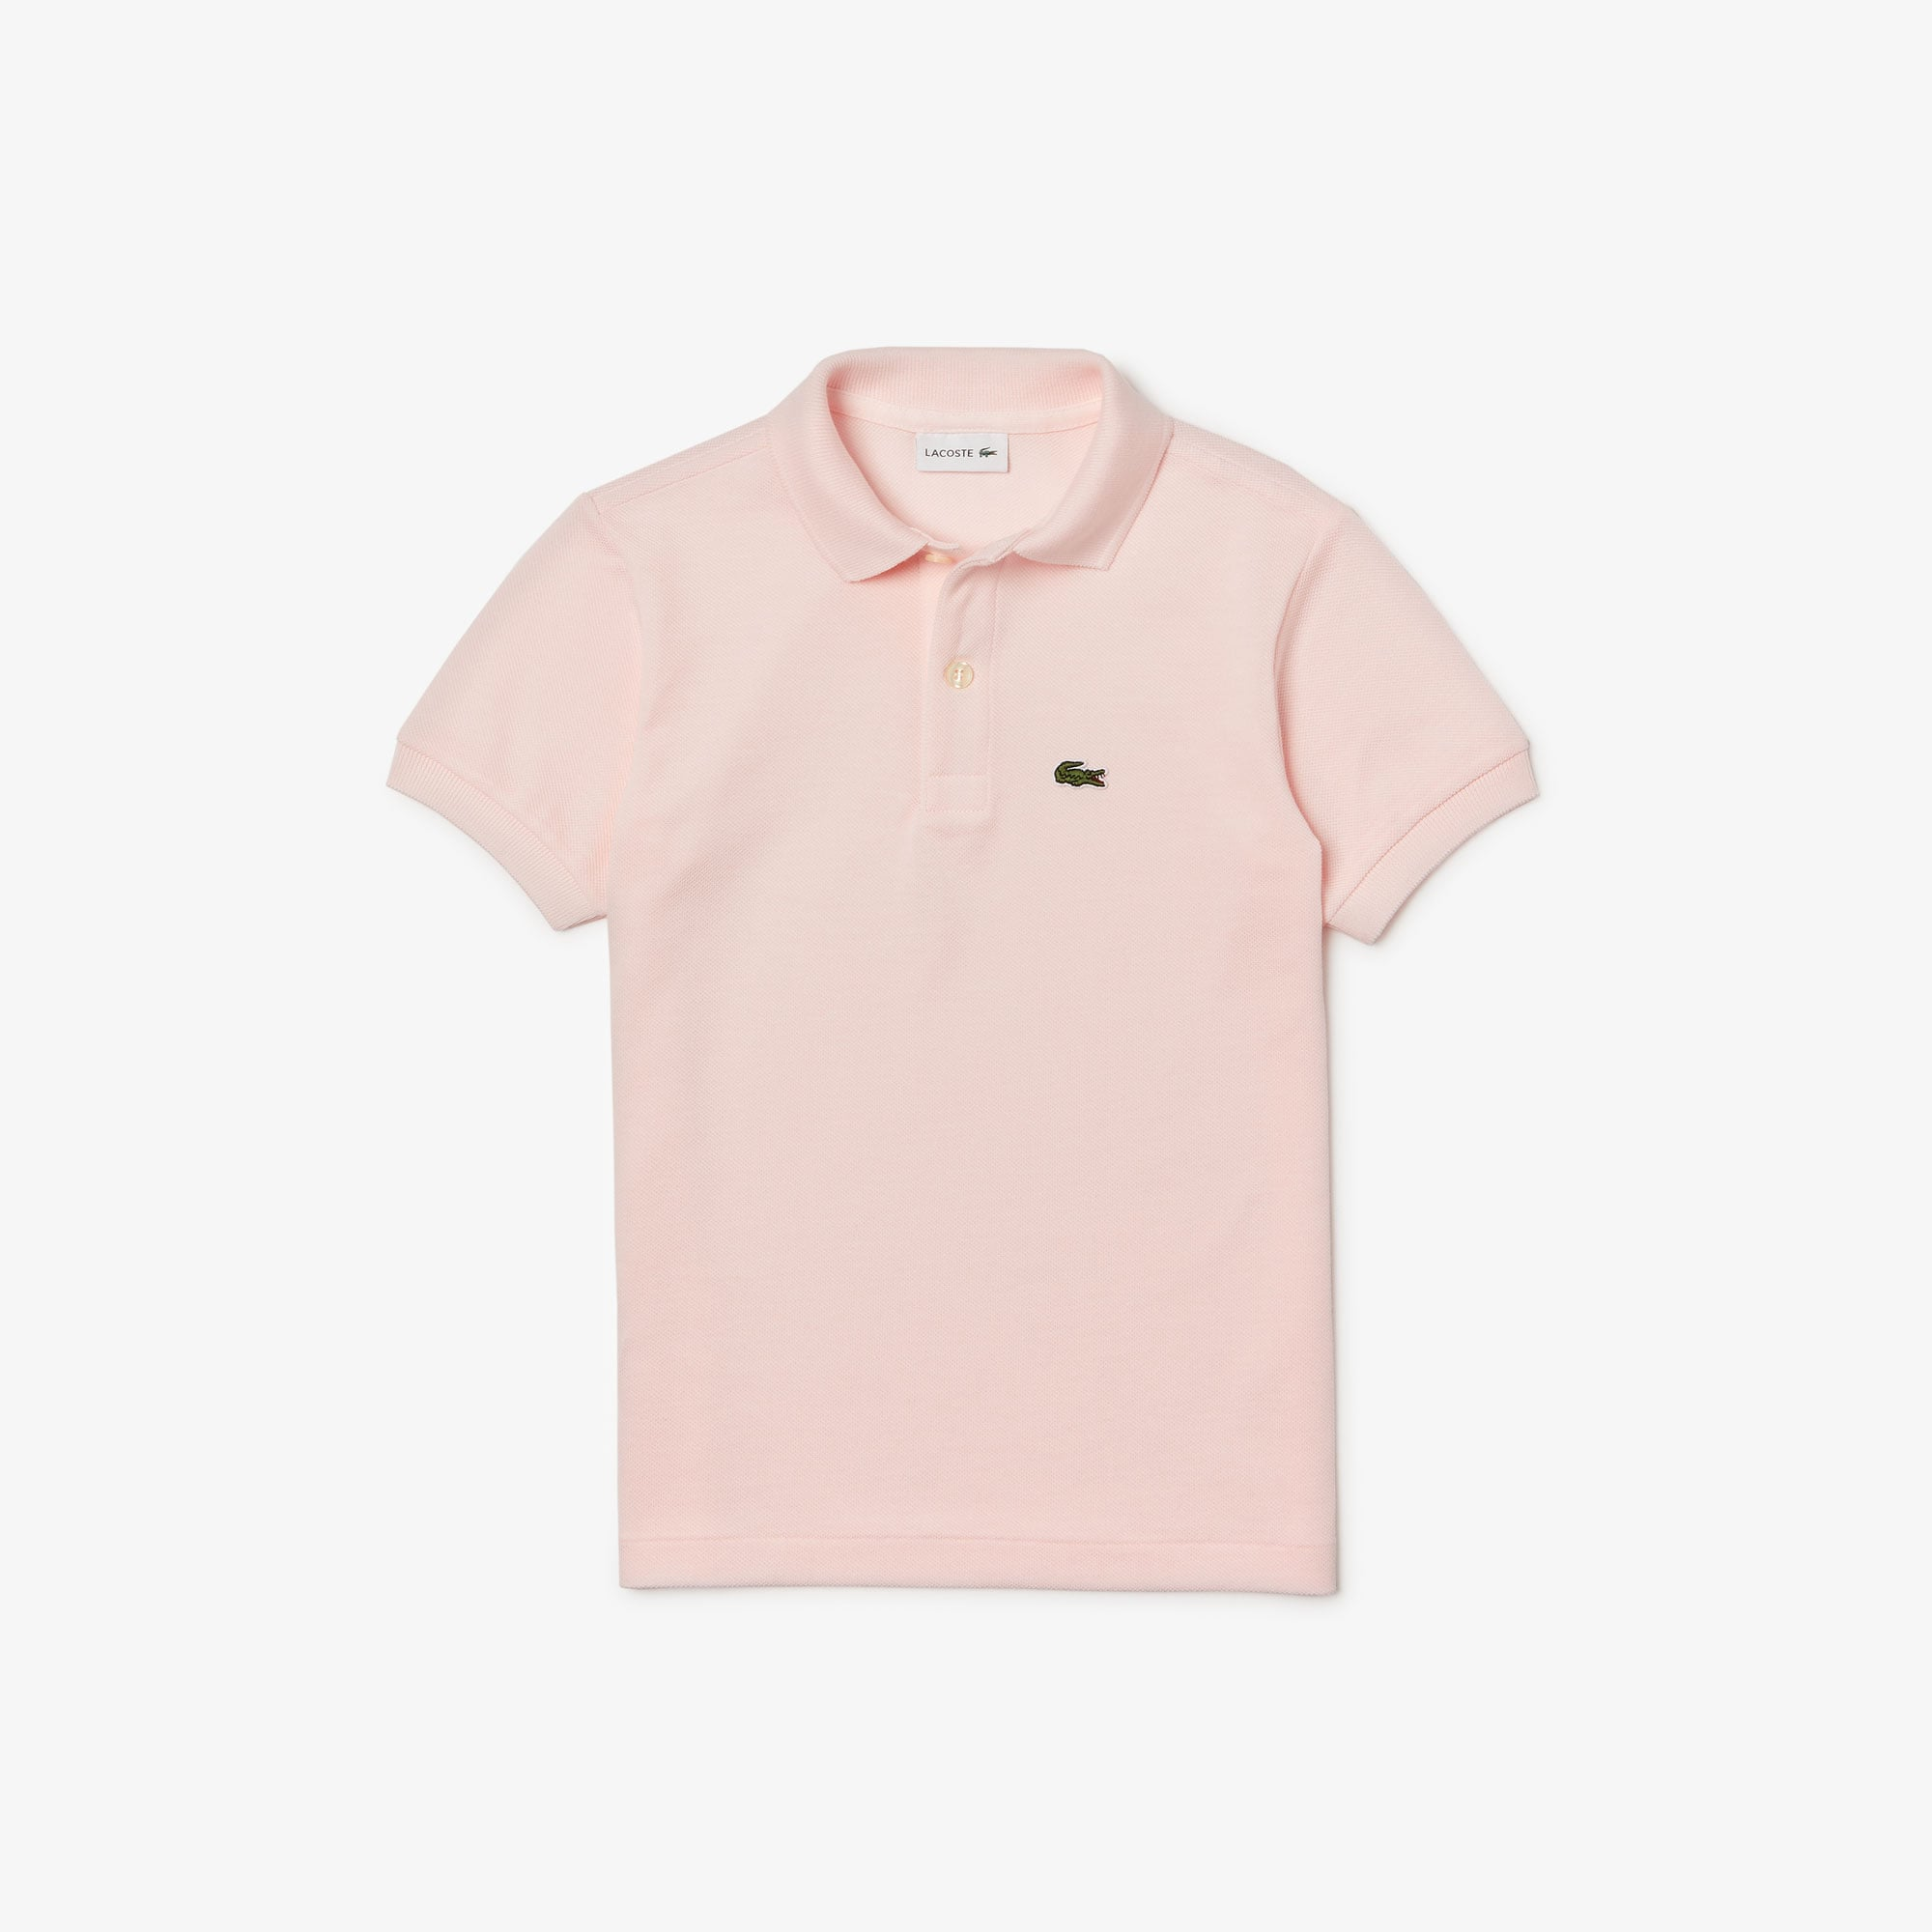 73d5f610b + 15 colors. Customise Customise. Lacoste Petit Piqué Polo Shirt